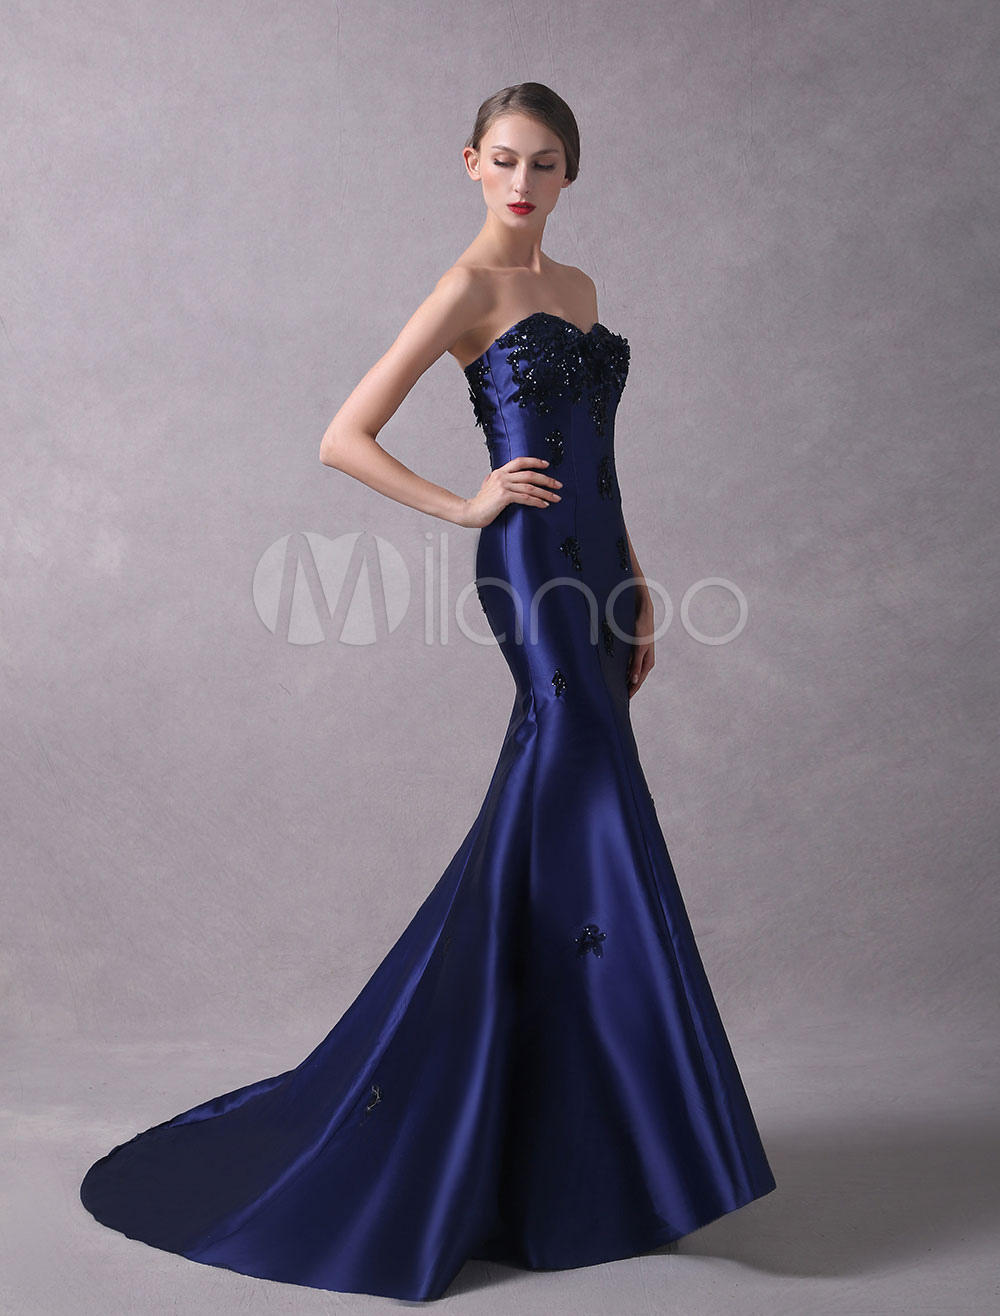 Buy Satin Evening Dresses Mermaid Strapless Formal Dress Lace Beaded Sweetheart Neckline Evening Gown With Train for $250.74 in Milanoo store